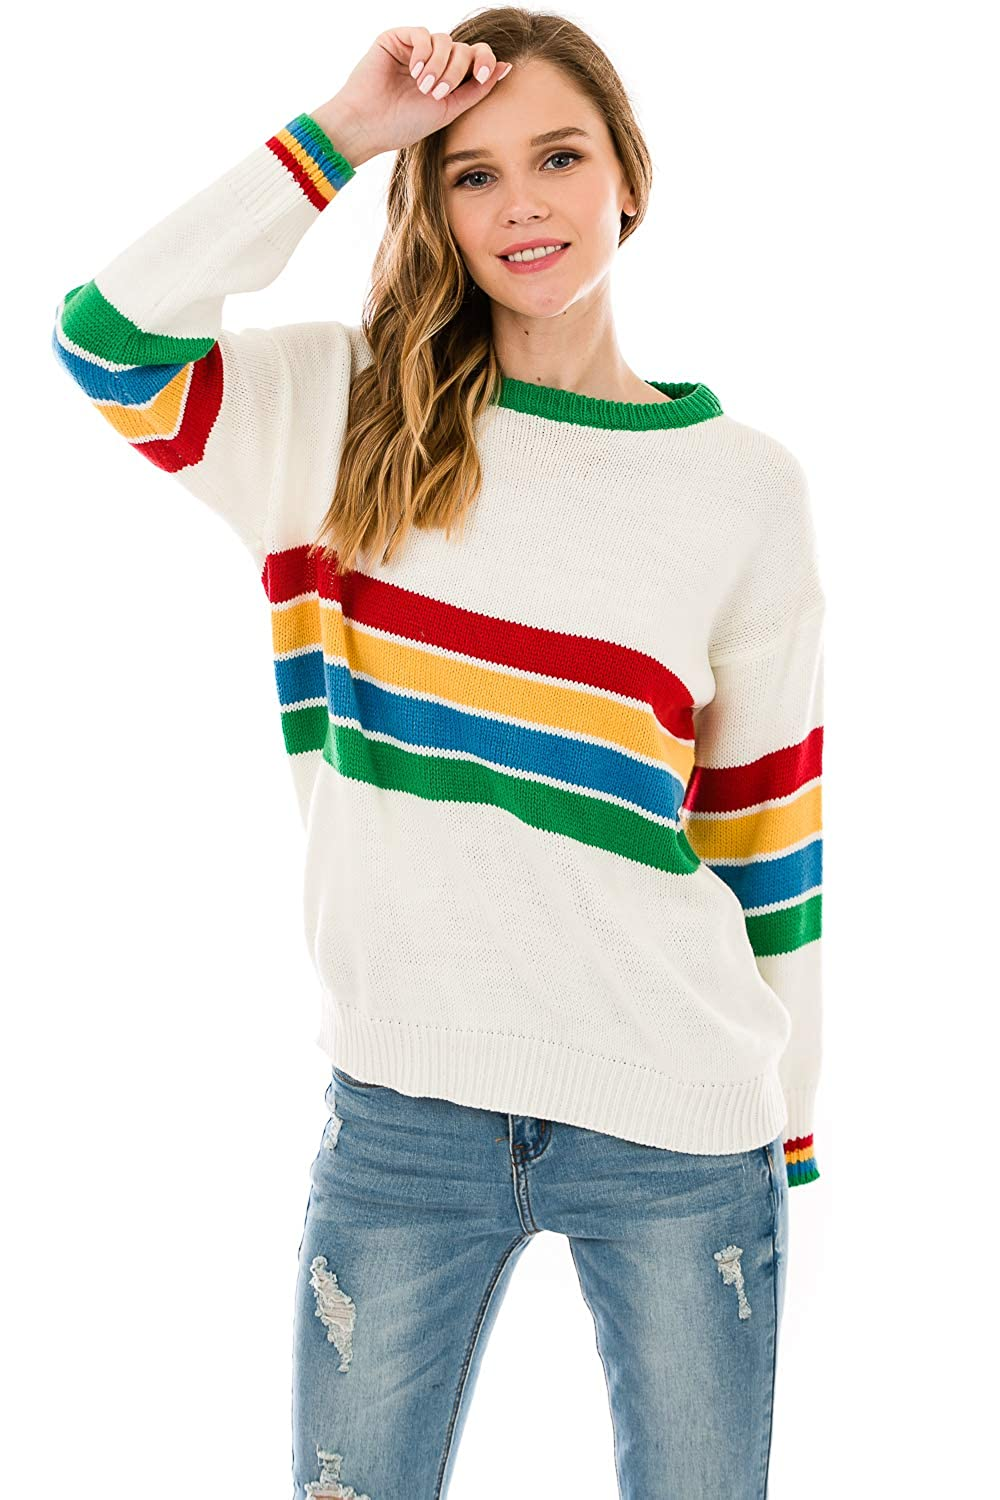 Over Kleshas Women's Sweater Rainbow Multi Stripe on Chest AKT1389